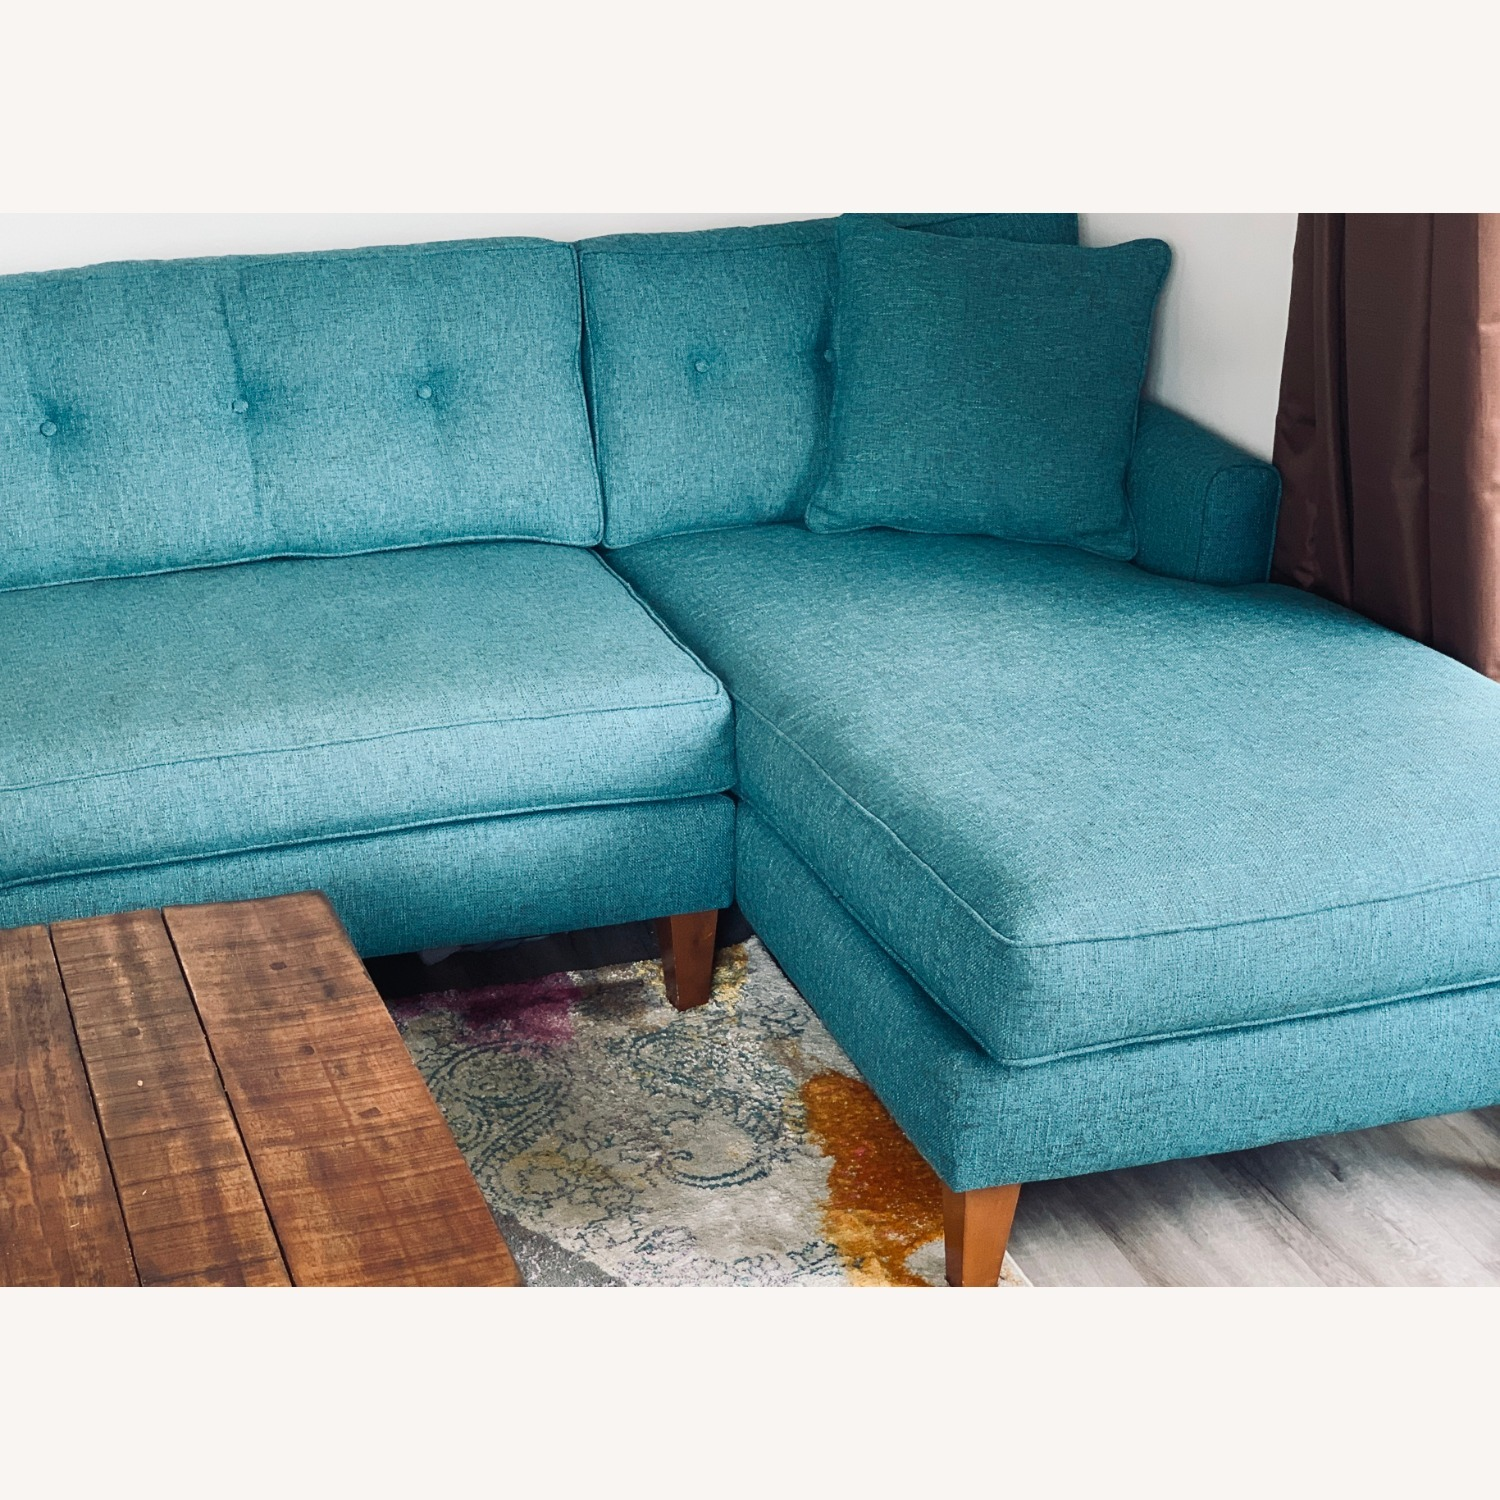 Trendy 2-Piece Sectional Sofa - image-5